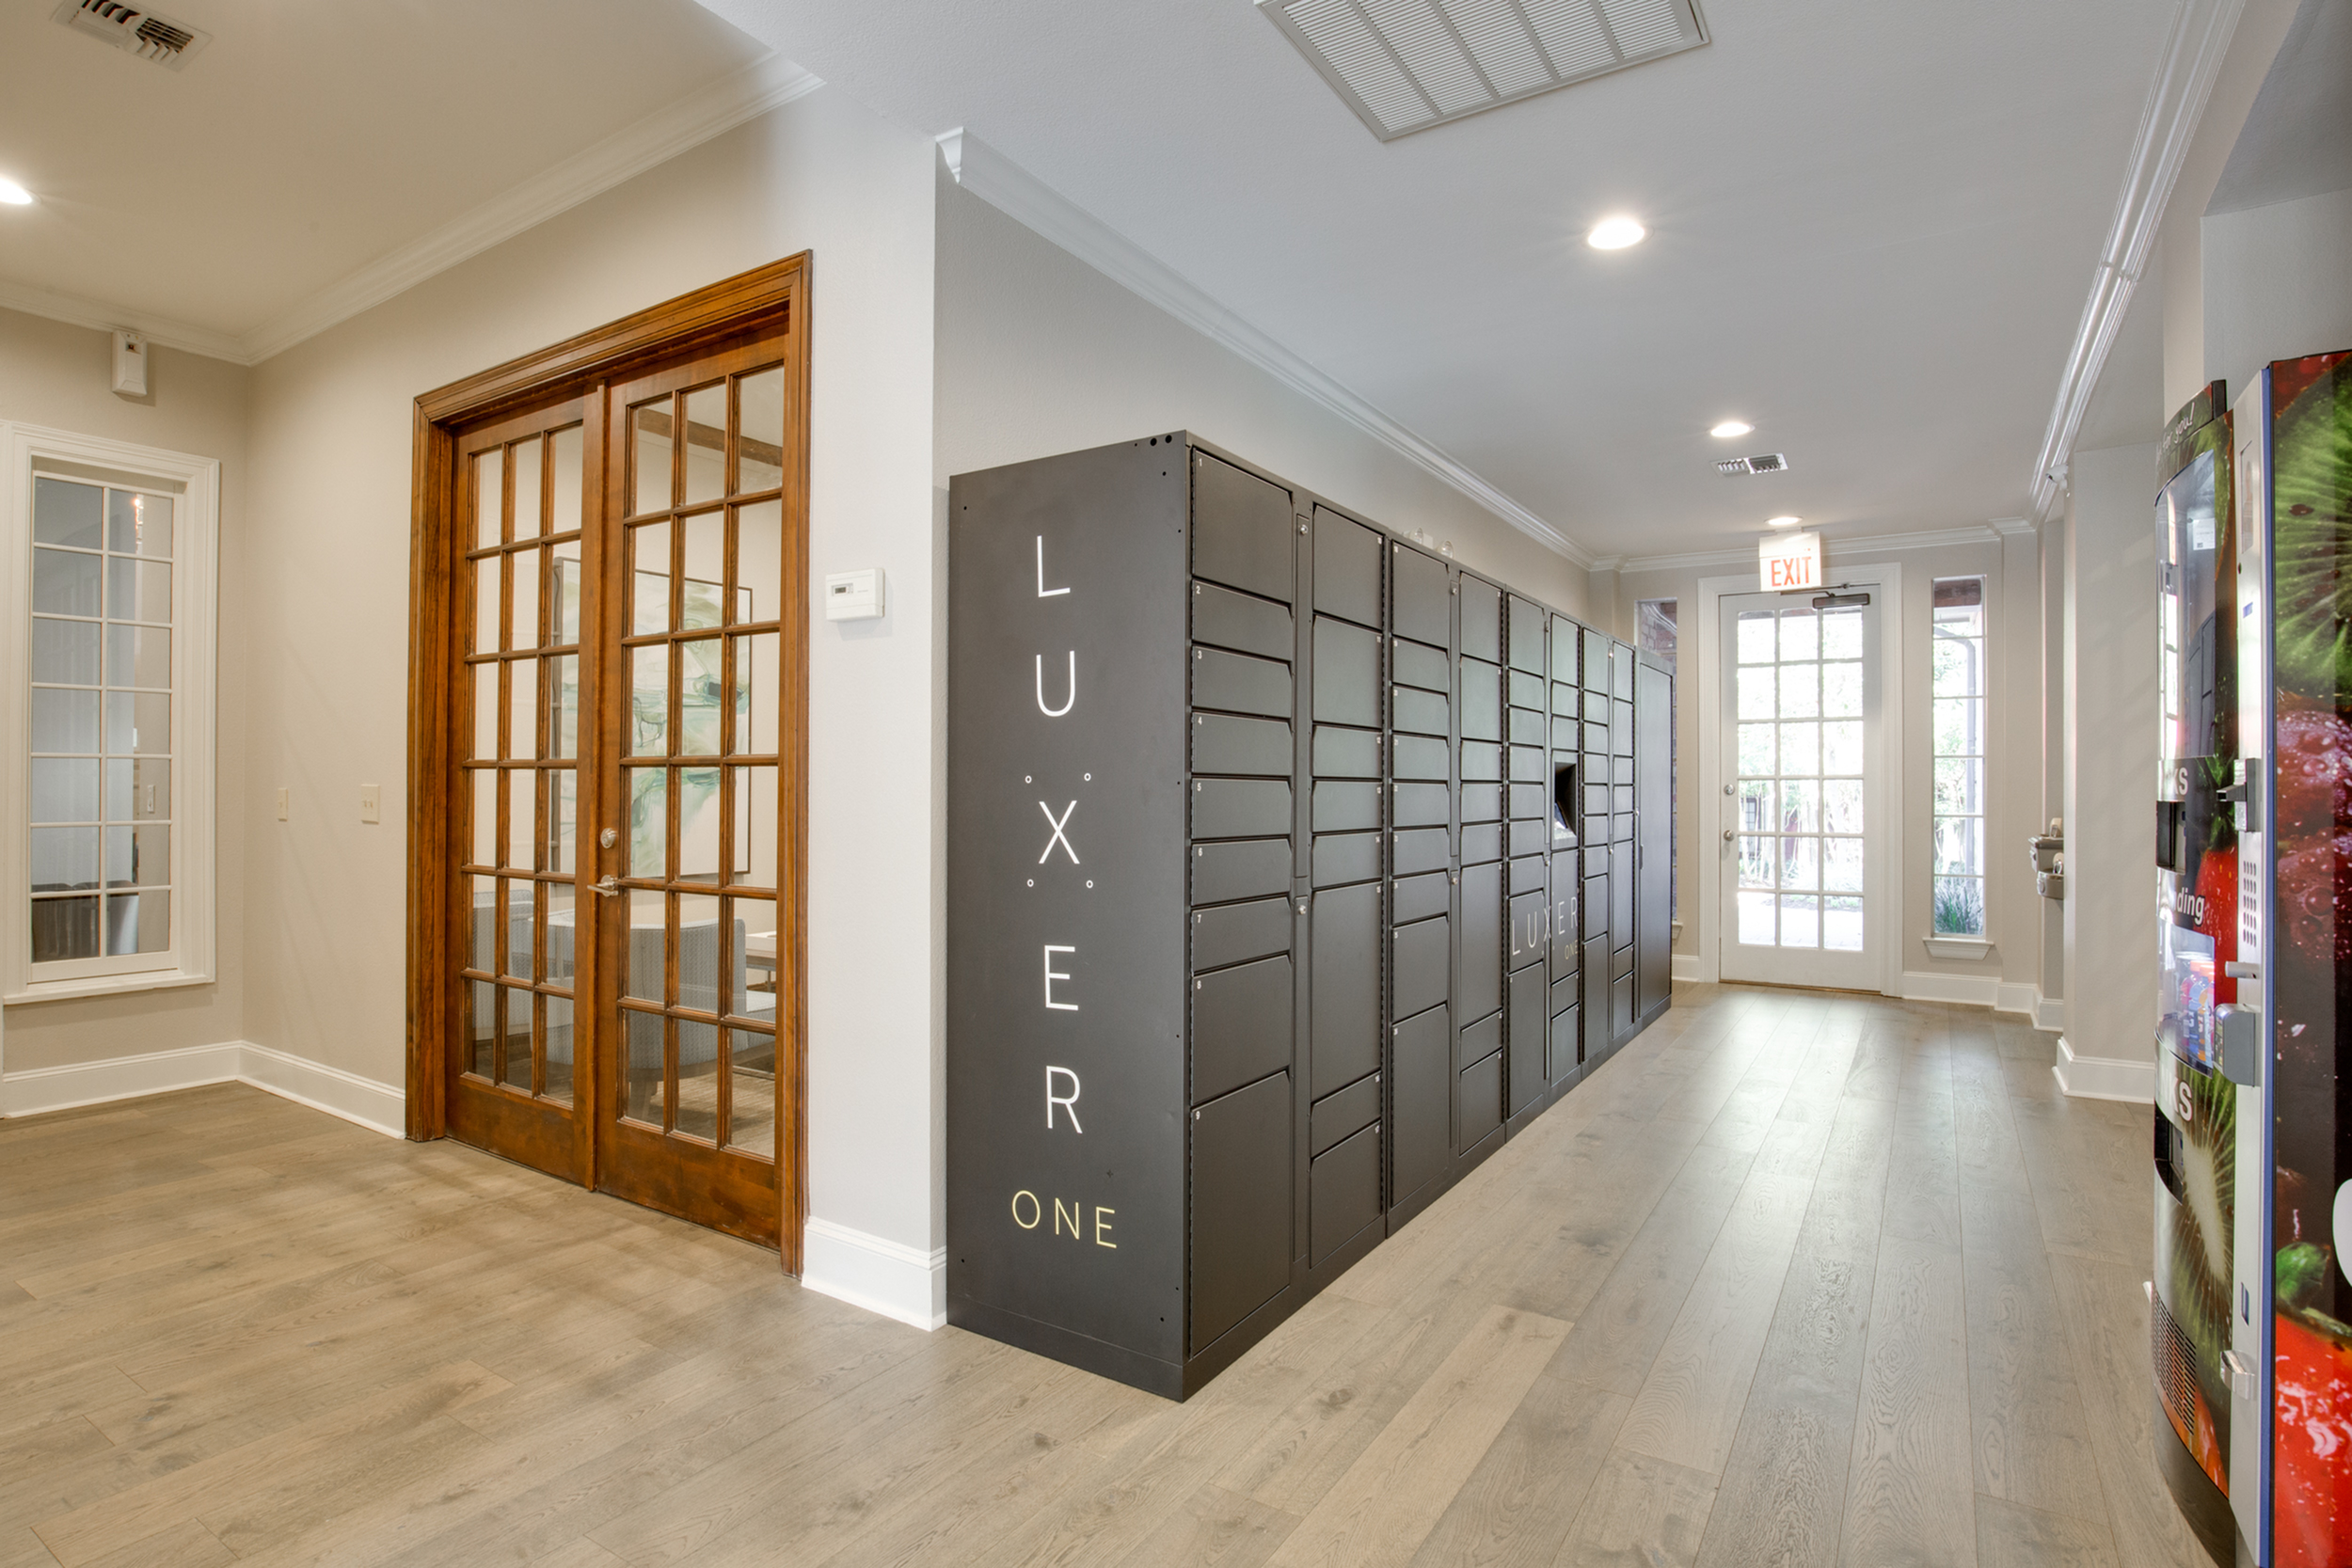 View of Luxer One Package Lockers with Wood Floors and Hallway at Raveneaux Apartments